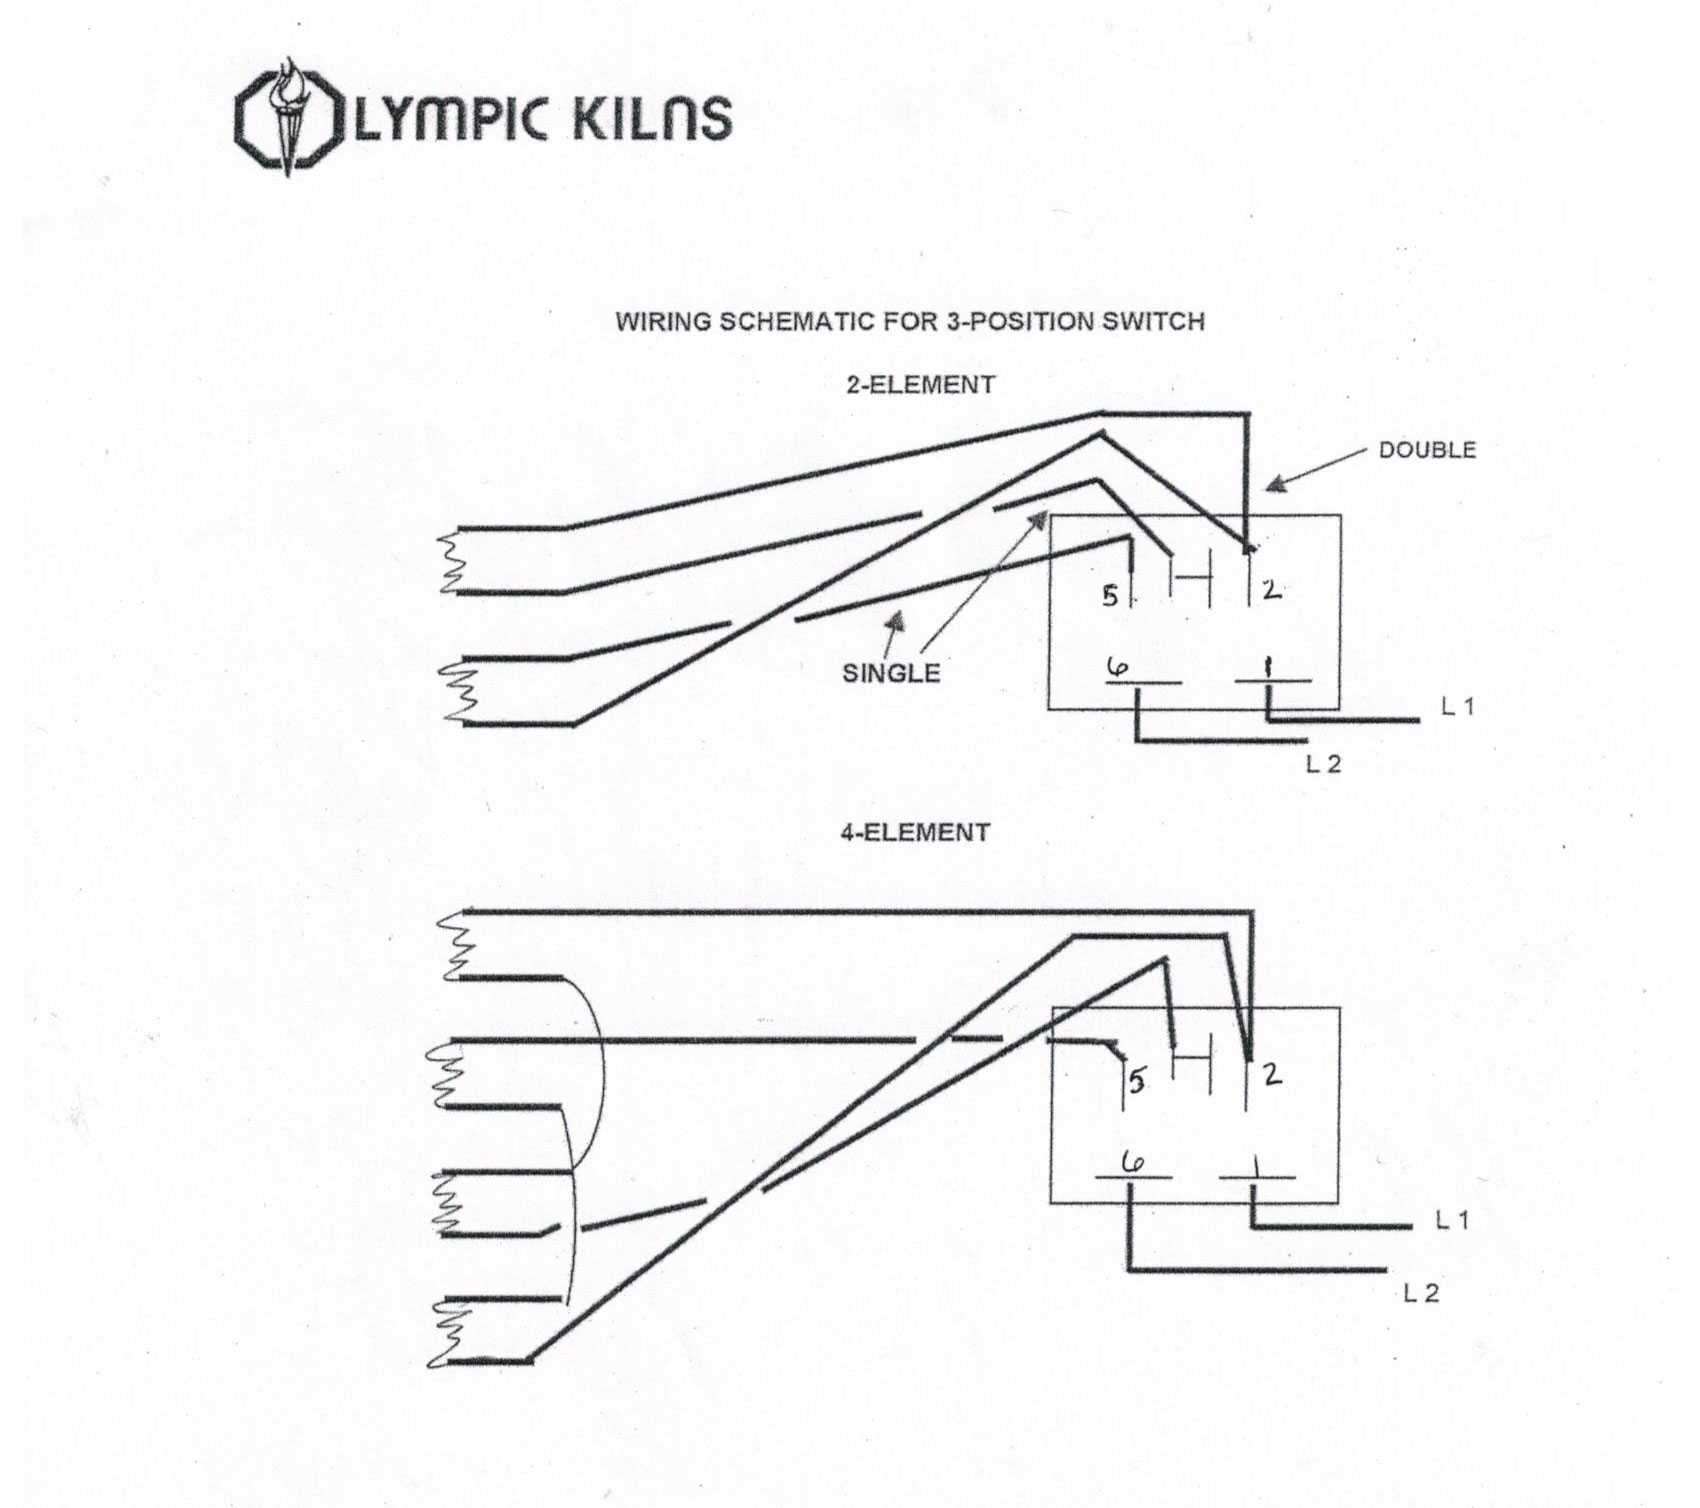 3 position switch best olympic kiln replacement elements clay king com olympic 2327 kiln wiring diagram at mifinder.co